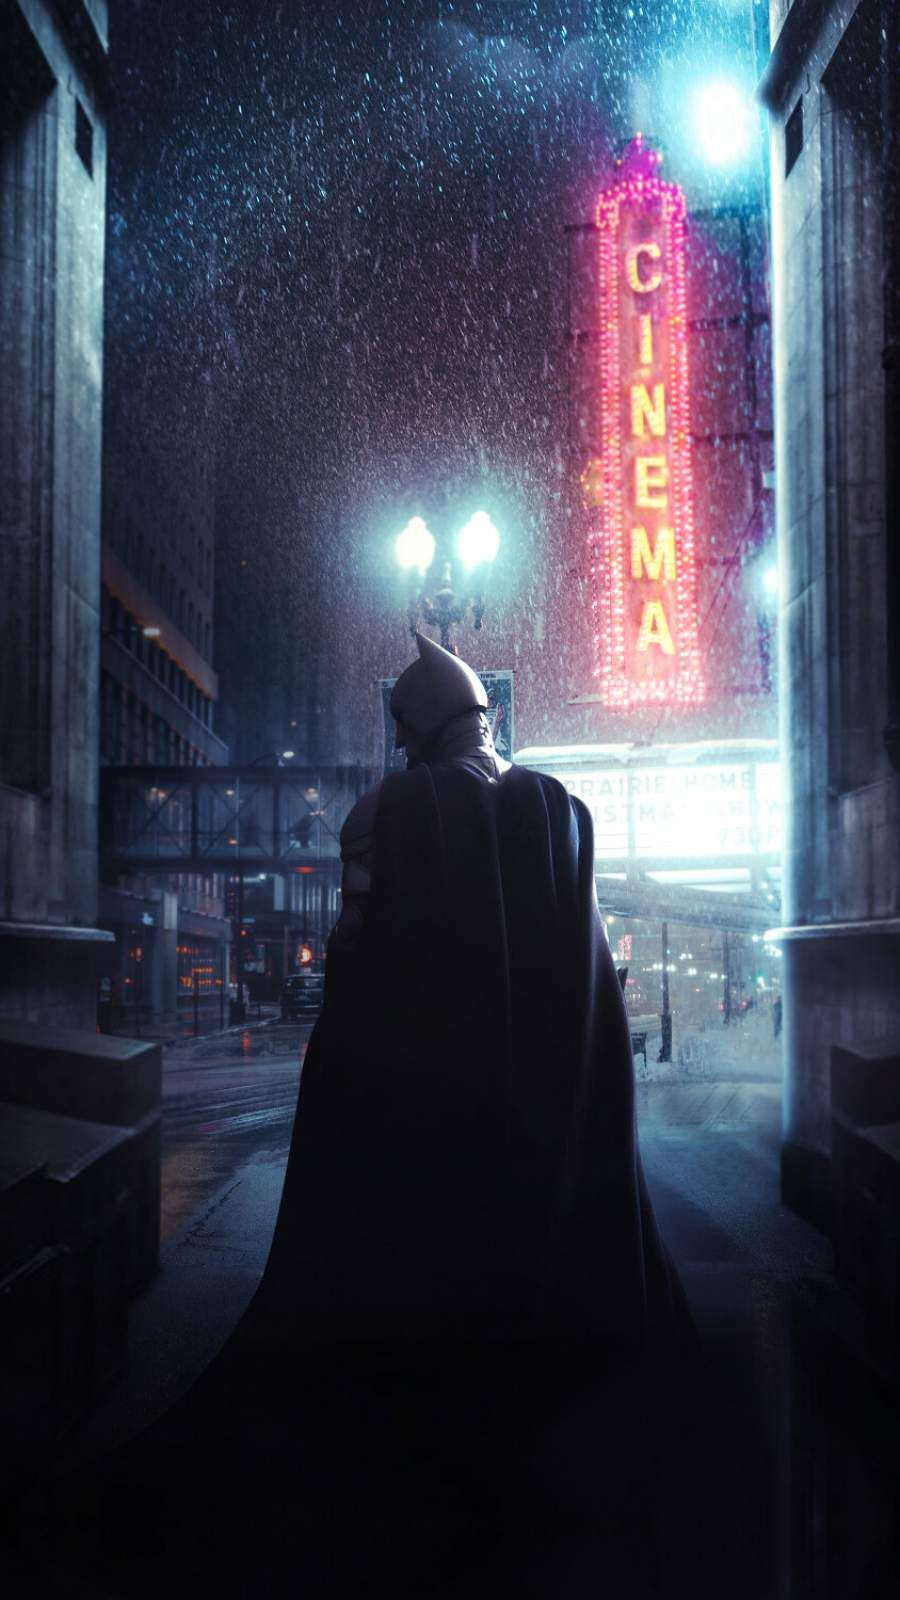 The Batman 2021 iPhone Wallpaper in 2020 Batman wallpaper 900x1600